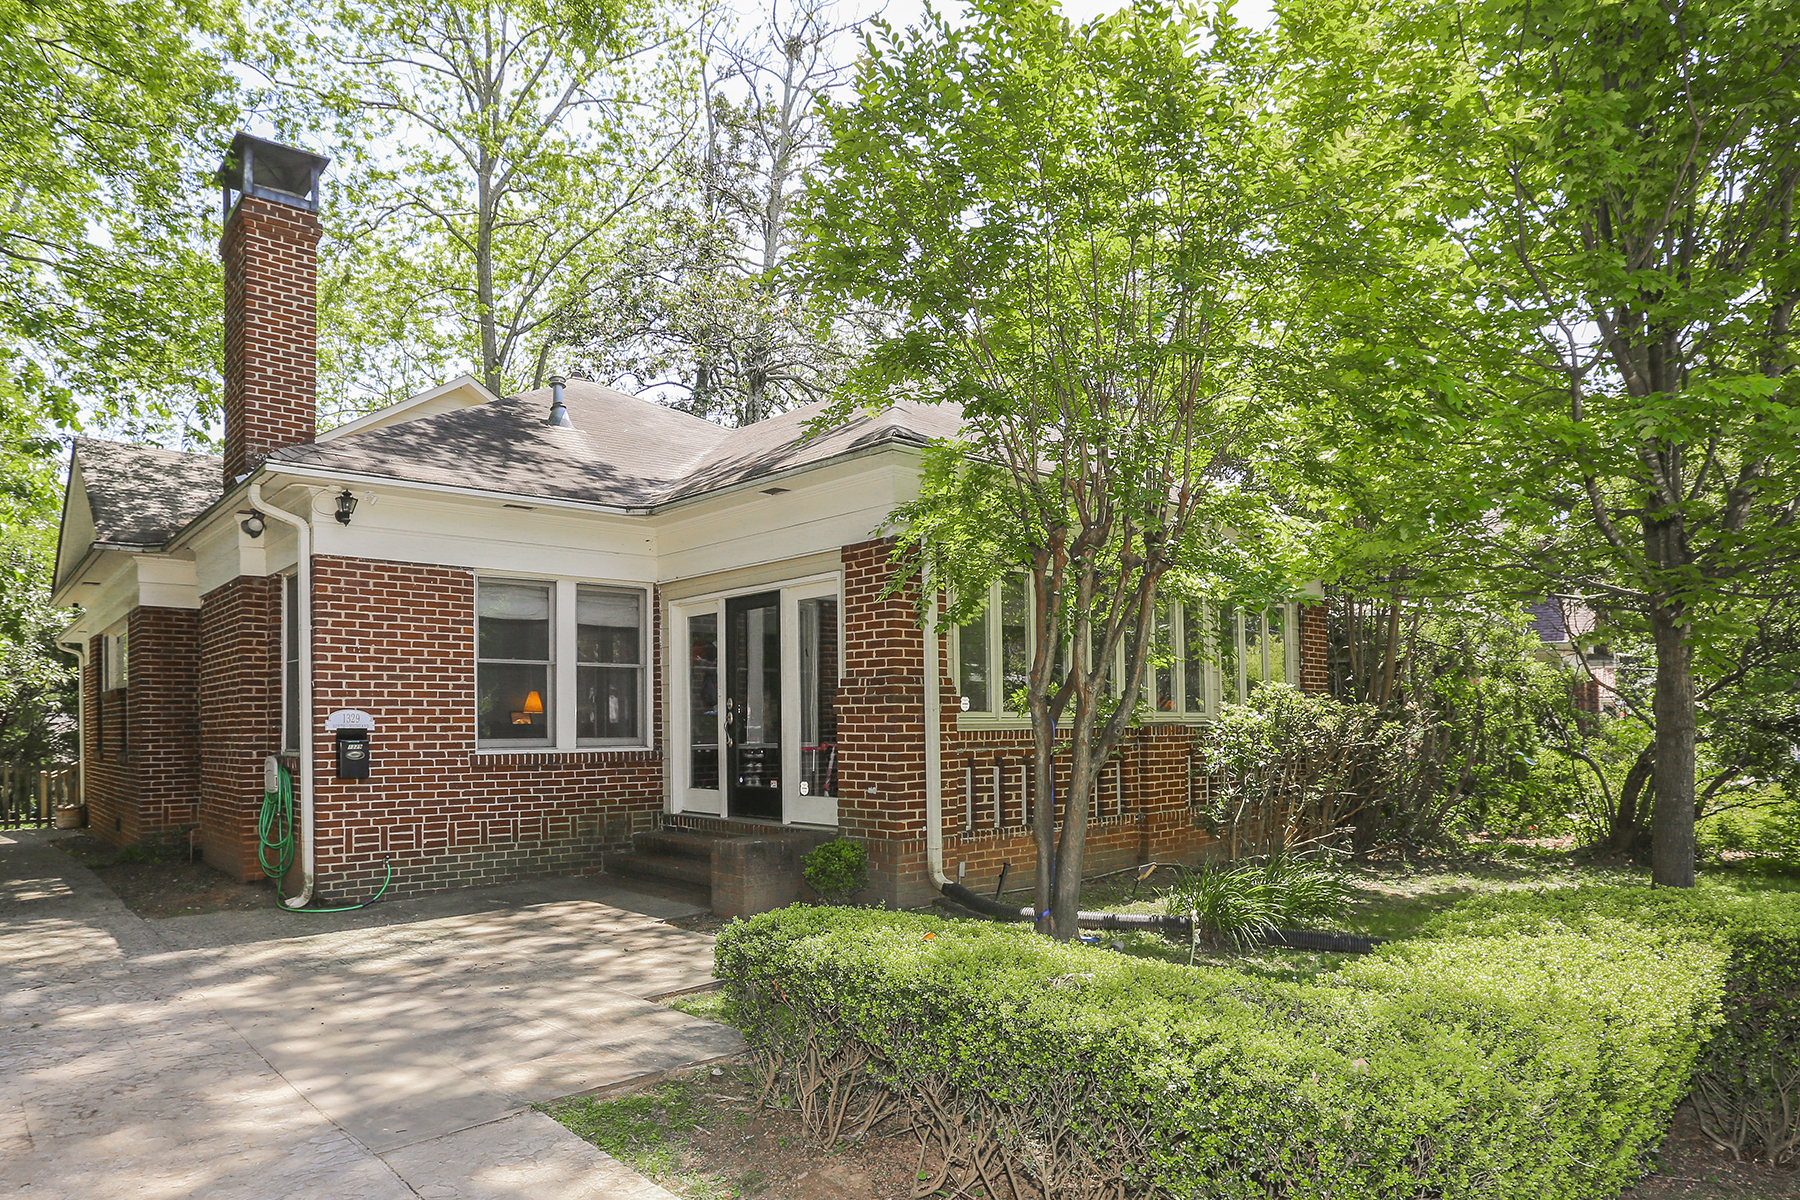 Single Family Home for Sale at Renovated Morningside Bungalow 1329 N Highland Ave Atlanta, Georgia 30306 United States